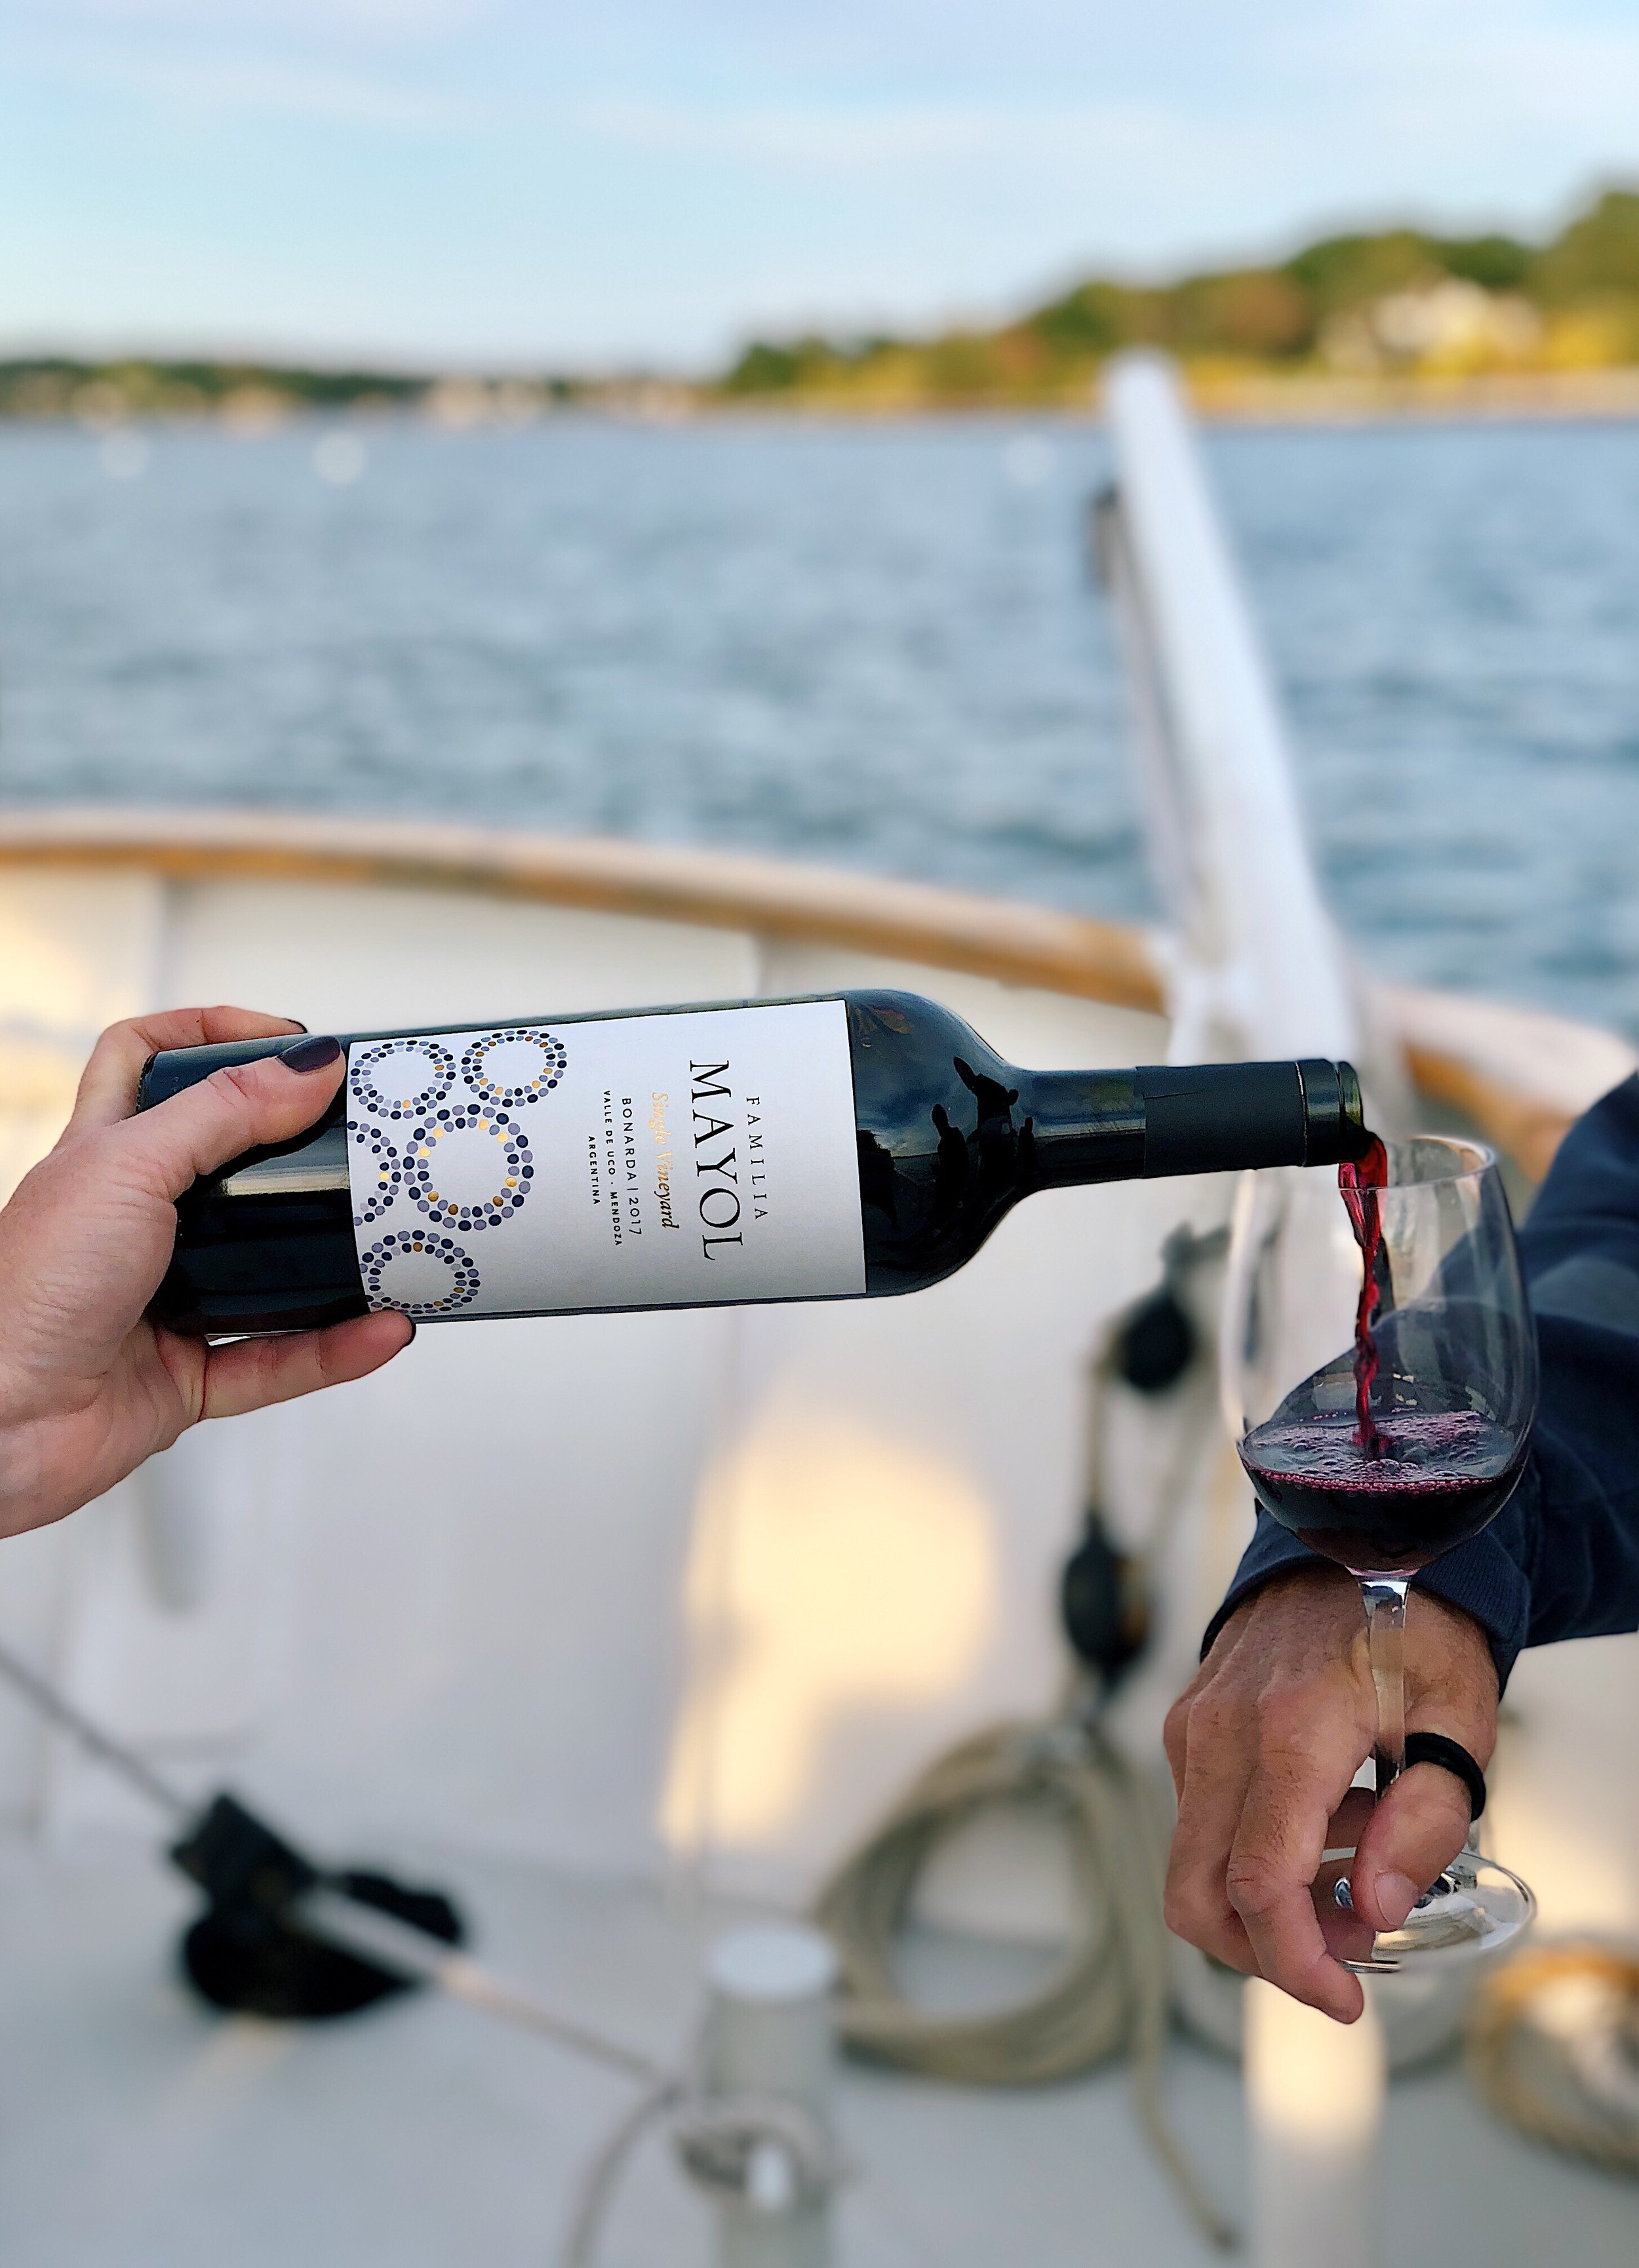 wine-wine-portland-maine-sail-red-rope-malbec-pour-southamerica.jpg